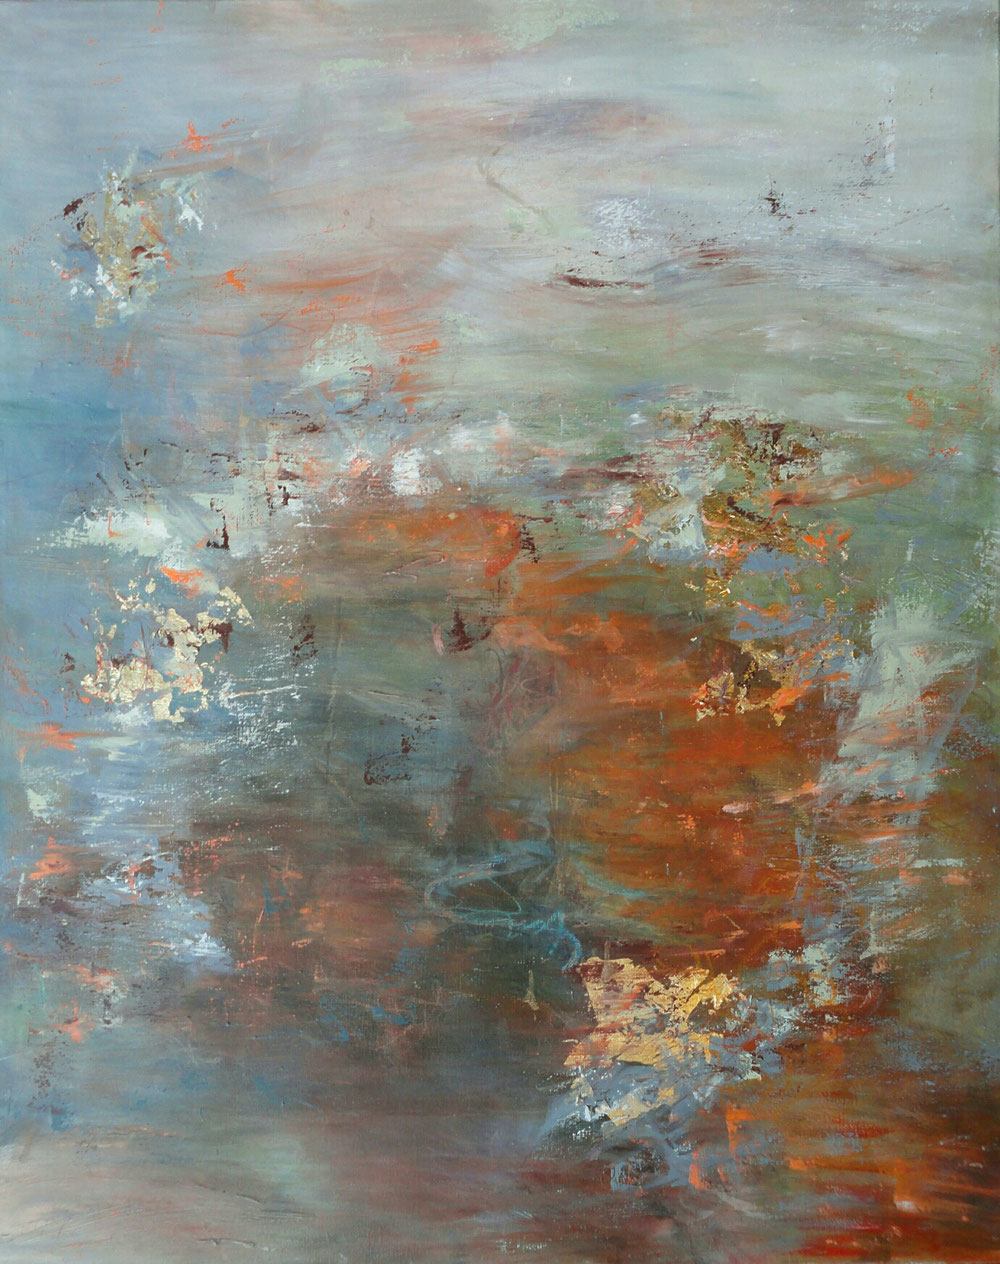 Reflections on the sea, 100 x 80, mixed media on canvas / private collection